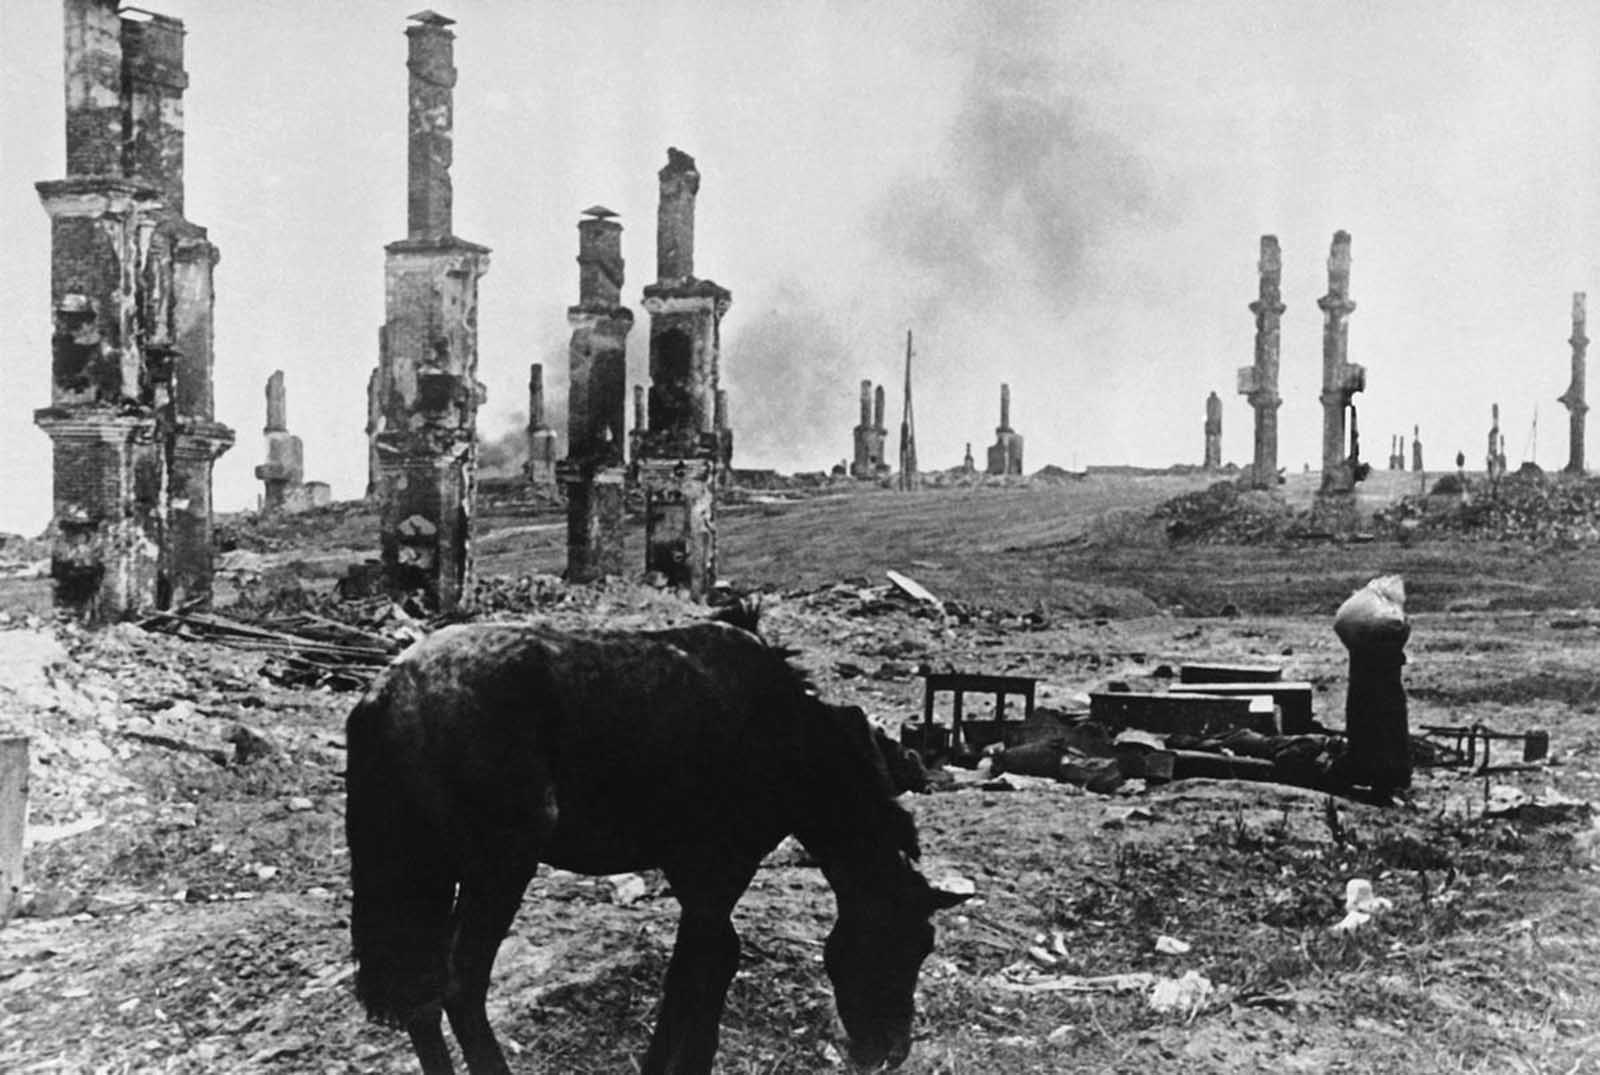 A scene of devastation as an abandoned horse stands among the ruins of Stalingrad in December of 1942.